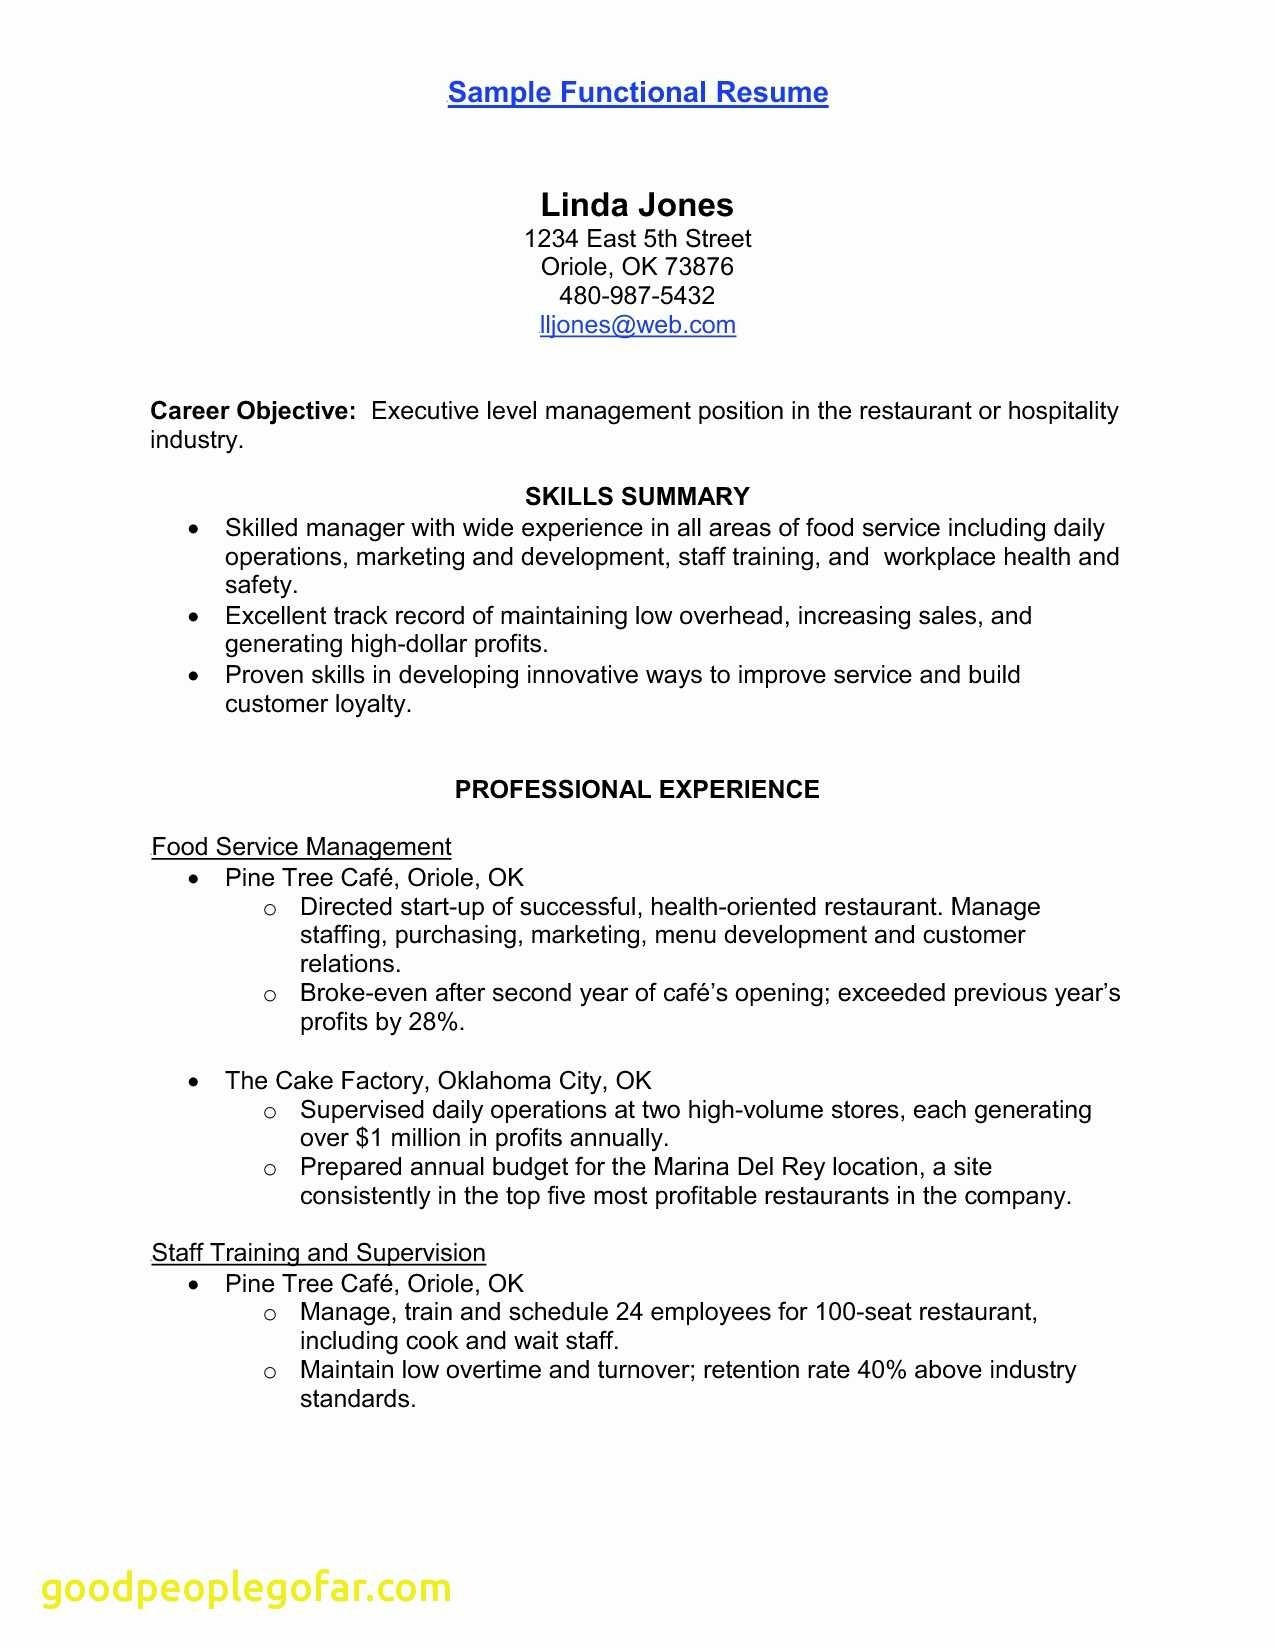 Service Industry Resume - Apprentice Electrician Resume Fresh Electrical Resume Elegant